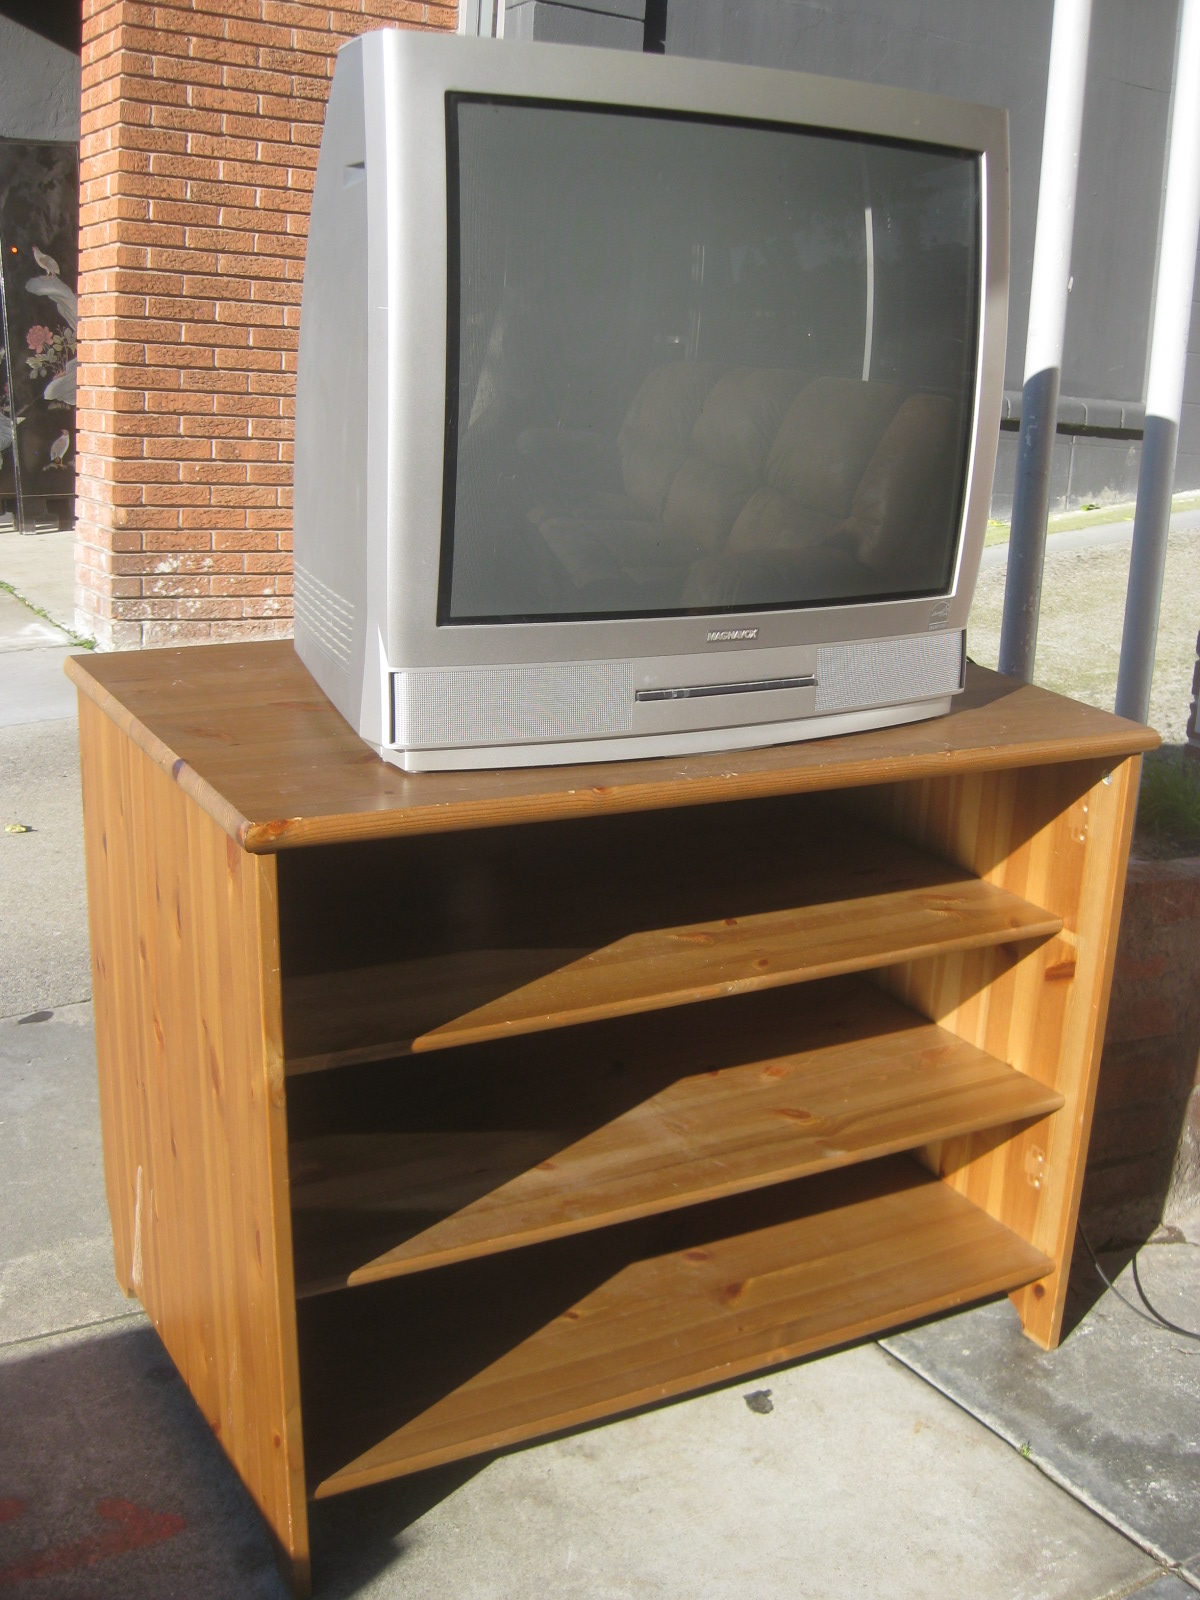 Uhuru Furniture Amp Collectibles Sold 2005 Magnavox 27